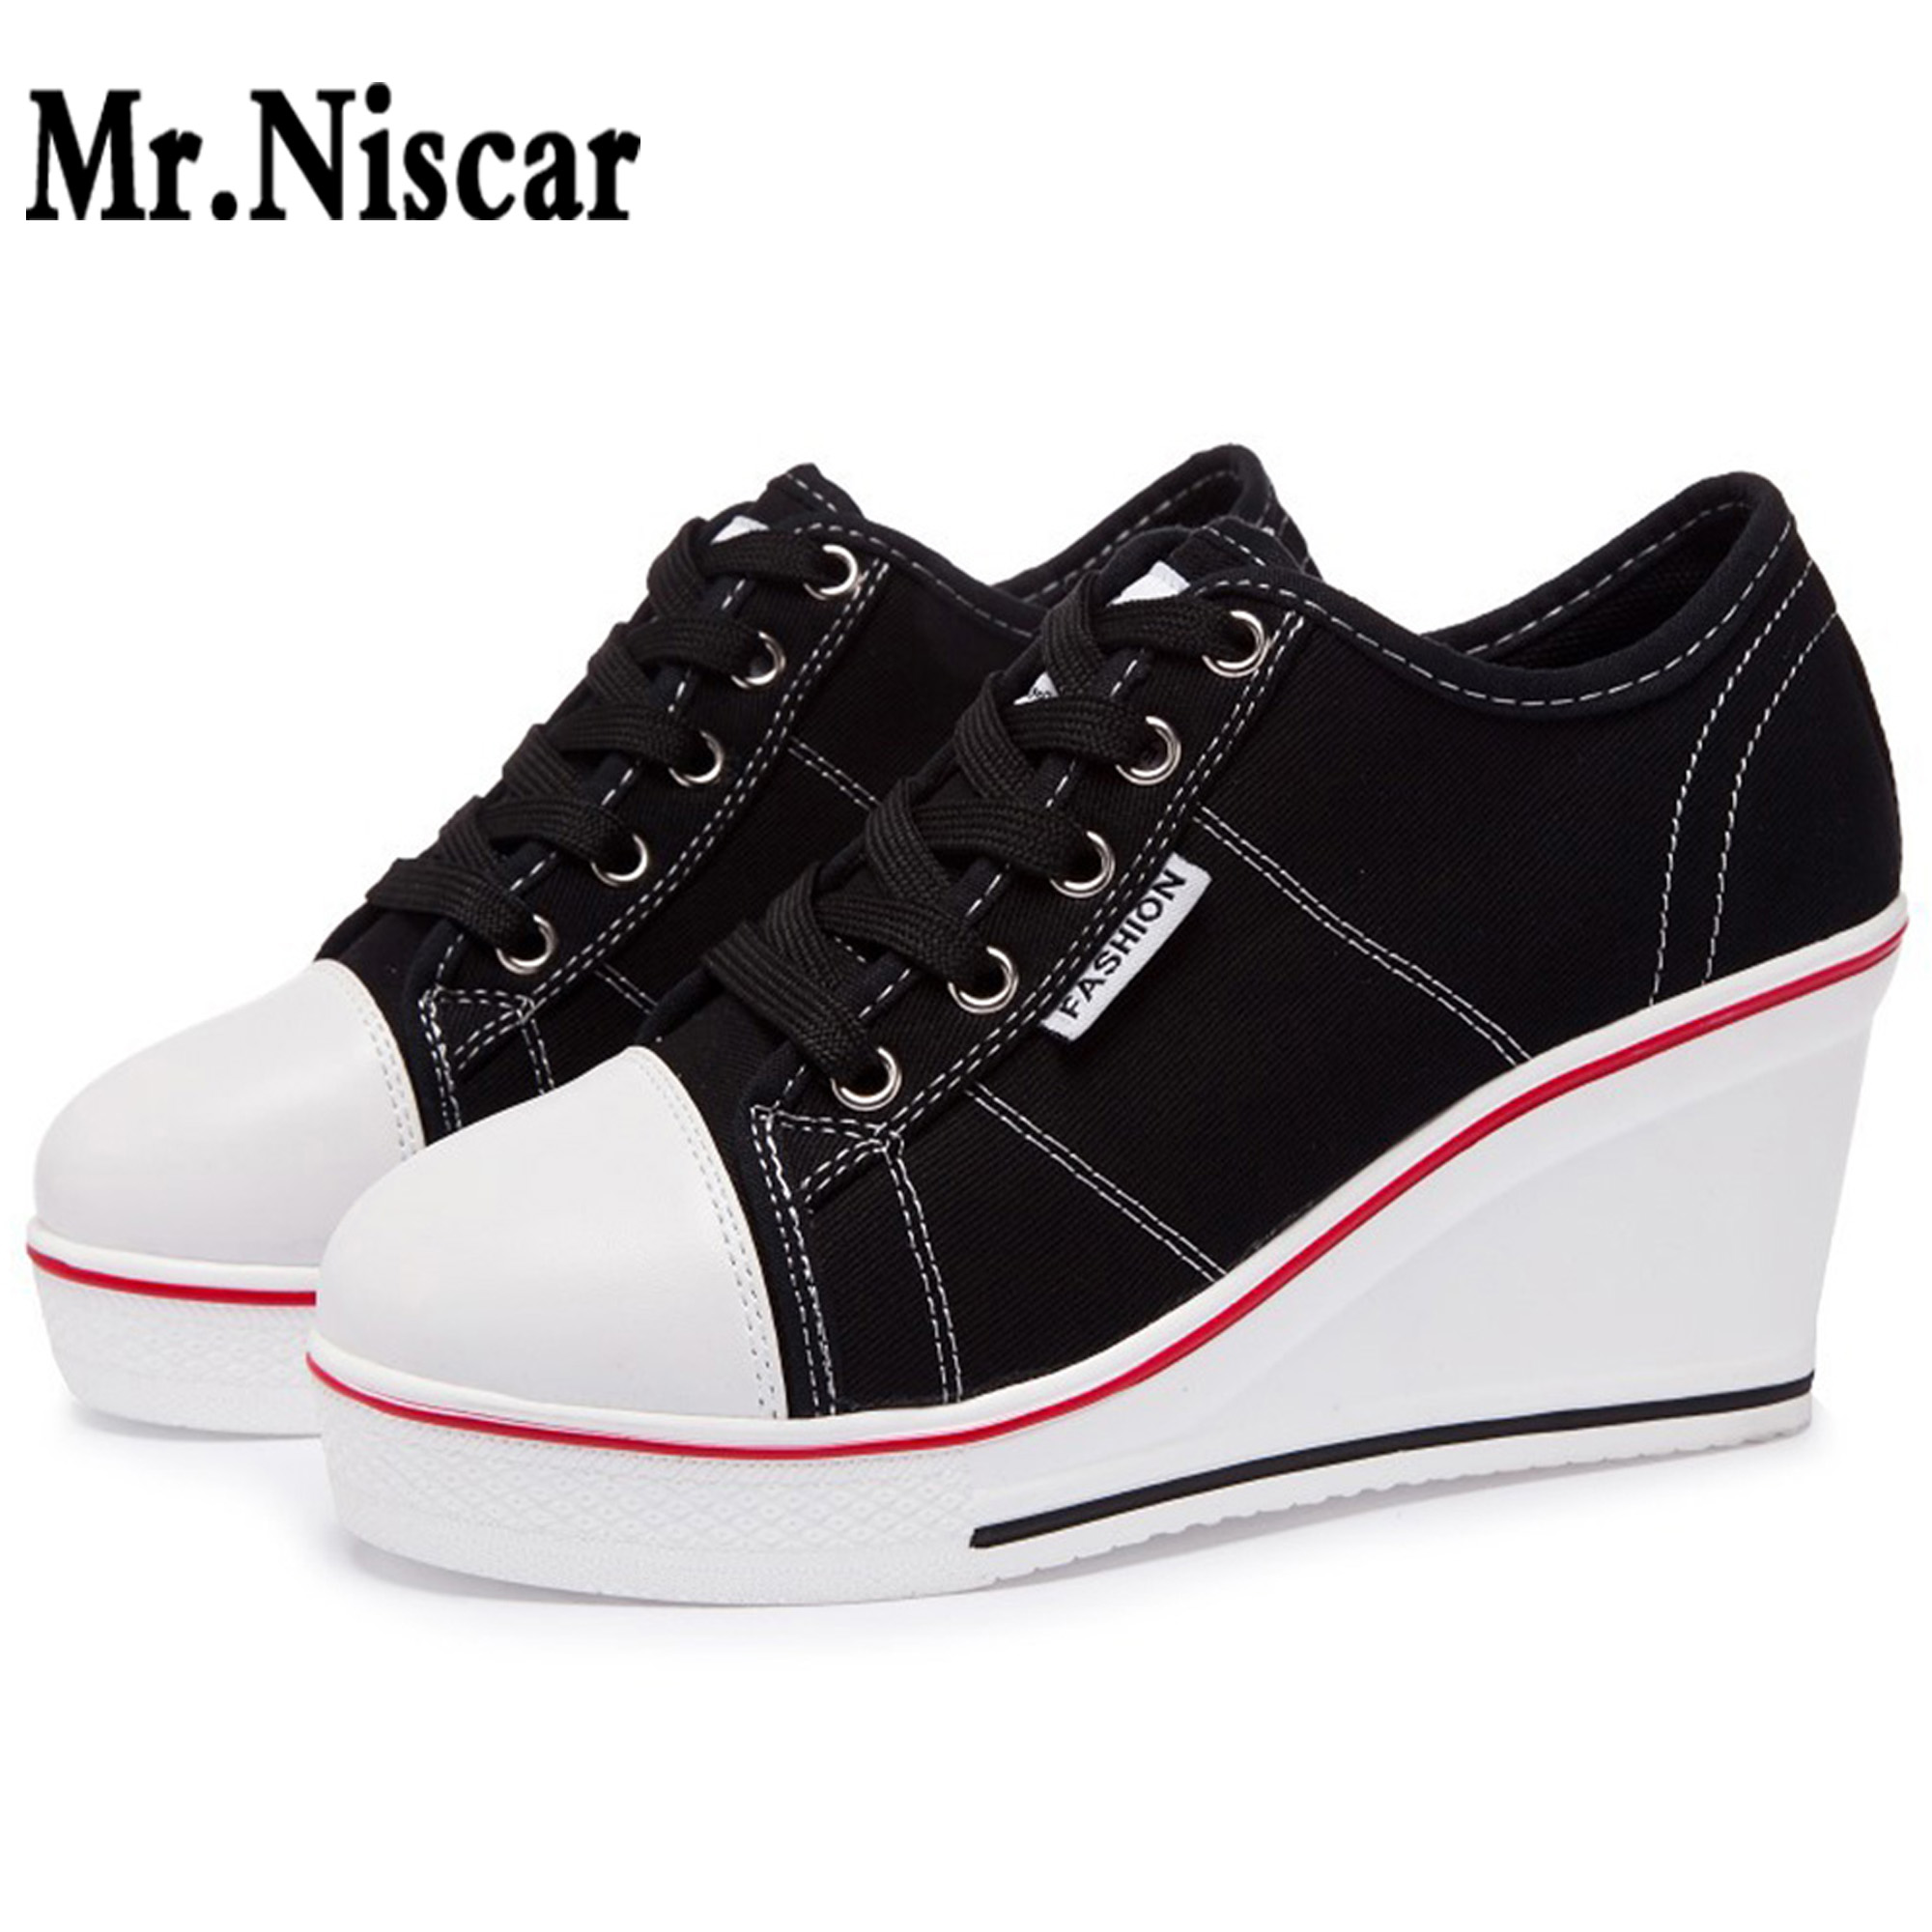 New Casual Wedge Canvas Shoes Women Sports Platform Sneakers Woman 2018 Thick Bottom Low Top 8cm Height Increase Single Shoes 2017 british style women casual shoes street snap low top platform wedge shoes black white lace up thick bottom shoes women